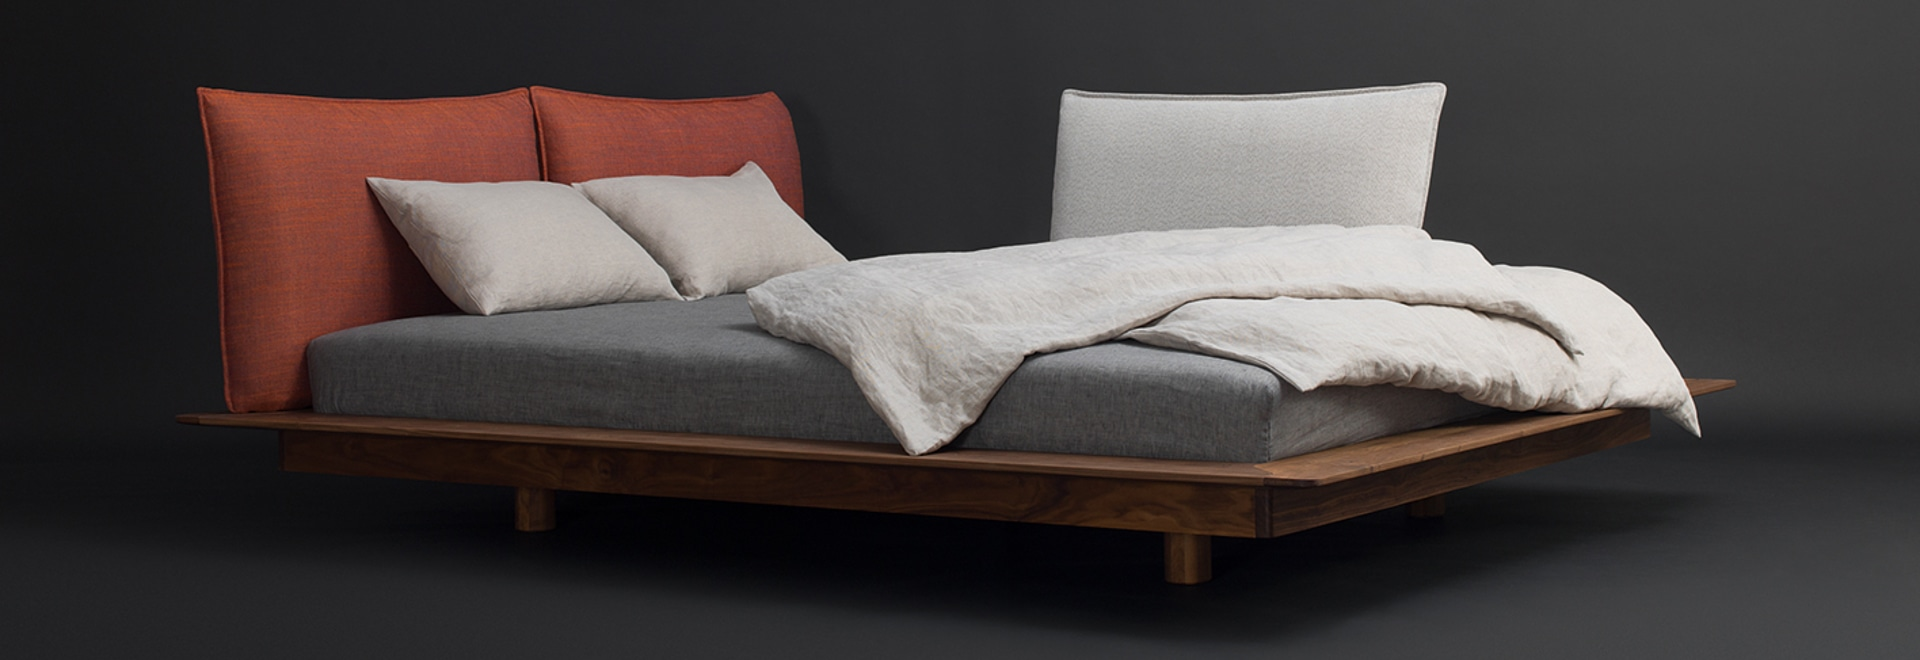 YOMA bed designed by Kaschkasch